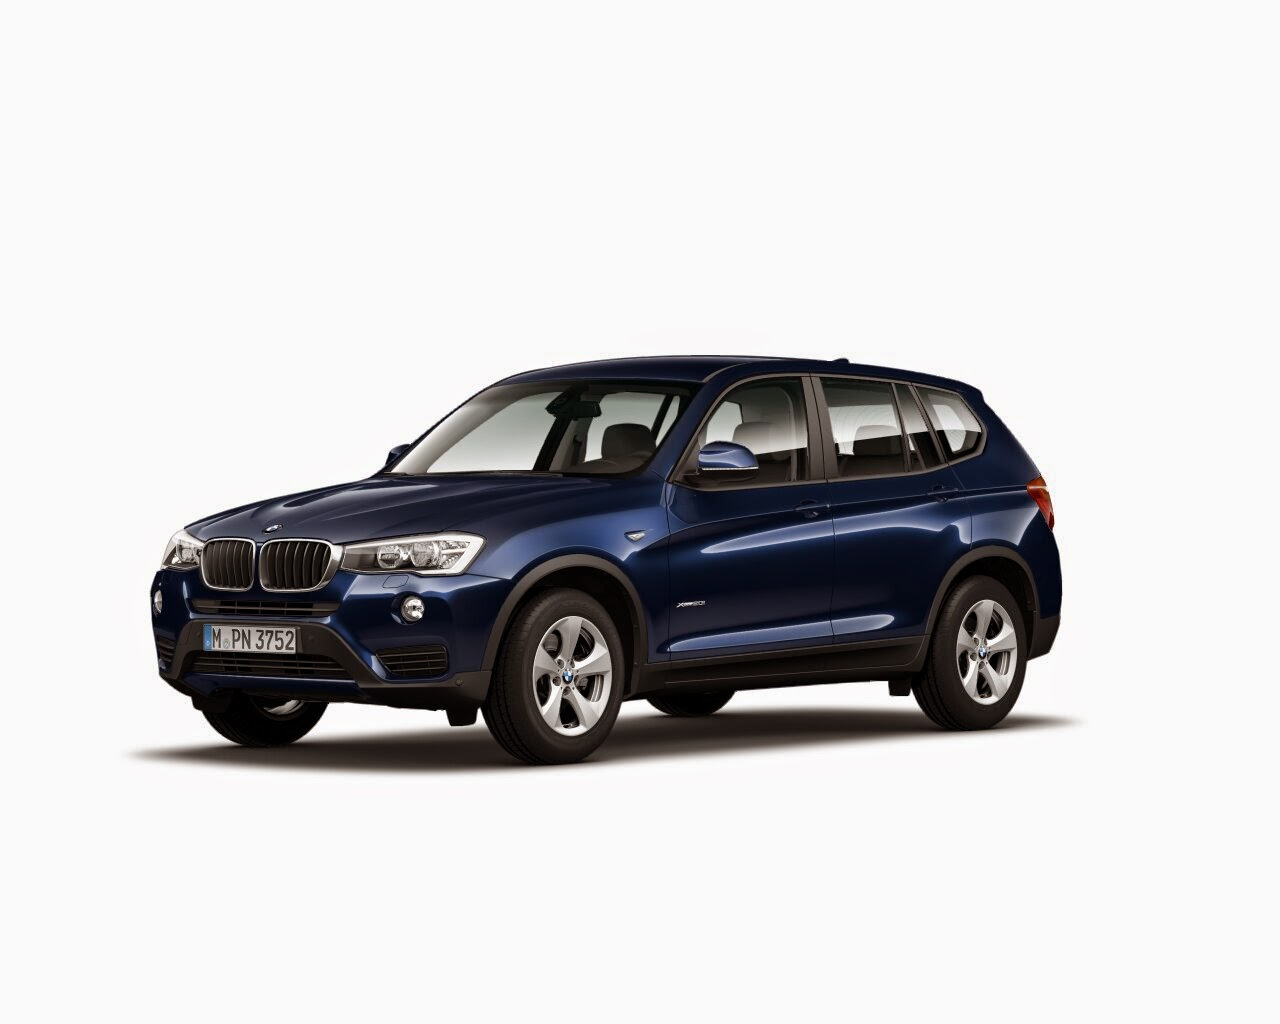 bmw x3 specifications review and configurations classic specifications. Black Bedroom Furniture Sets. Home Design Ideas